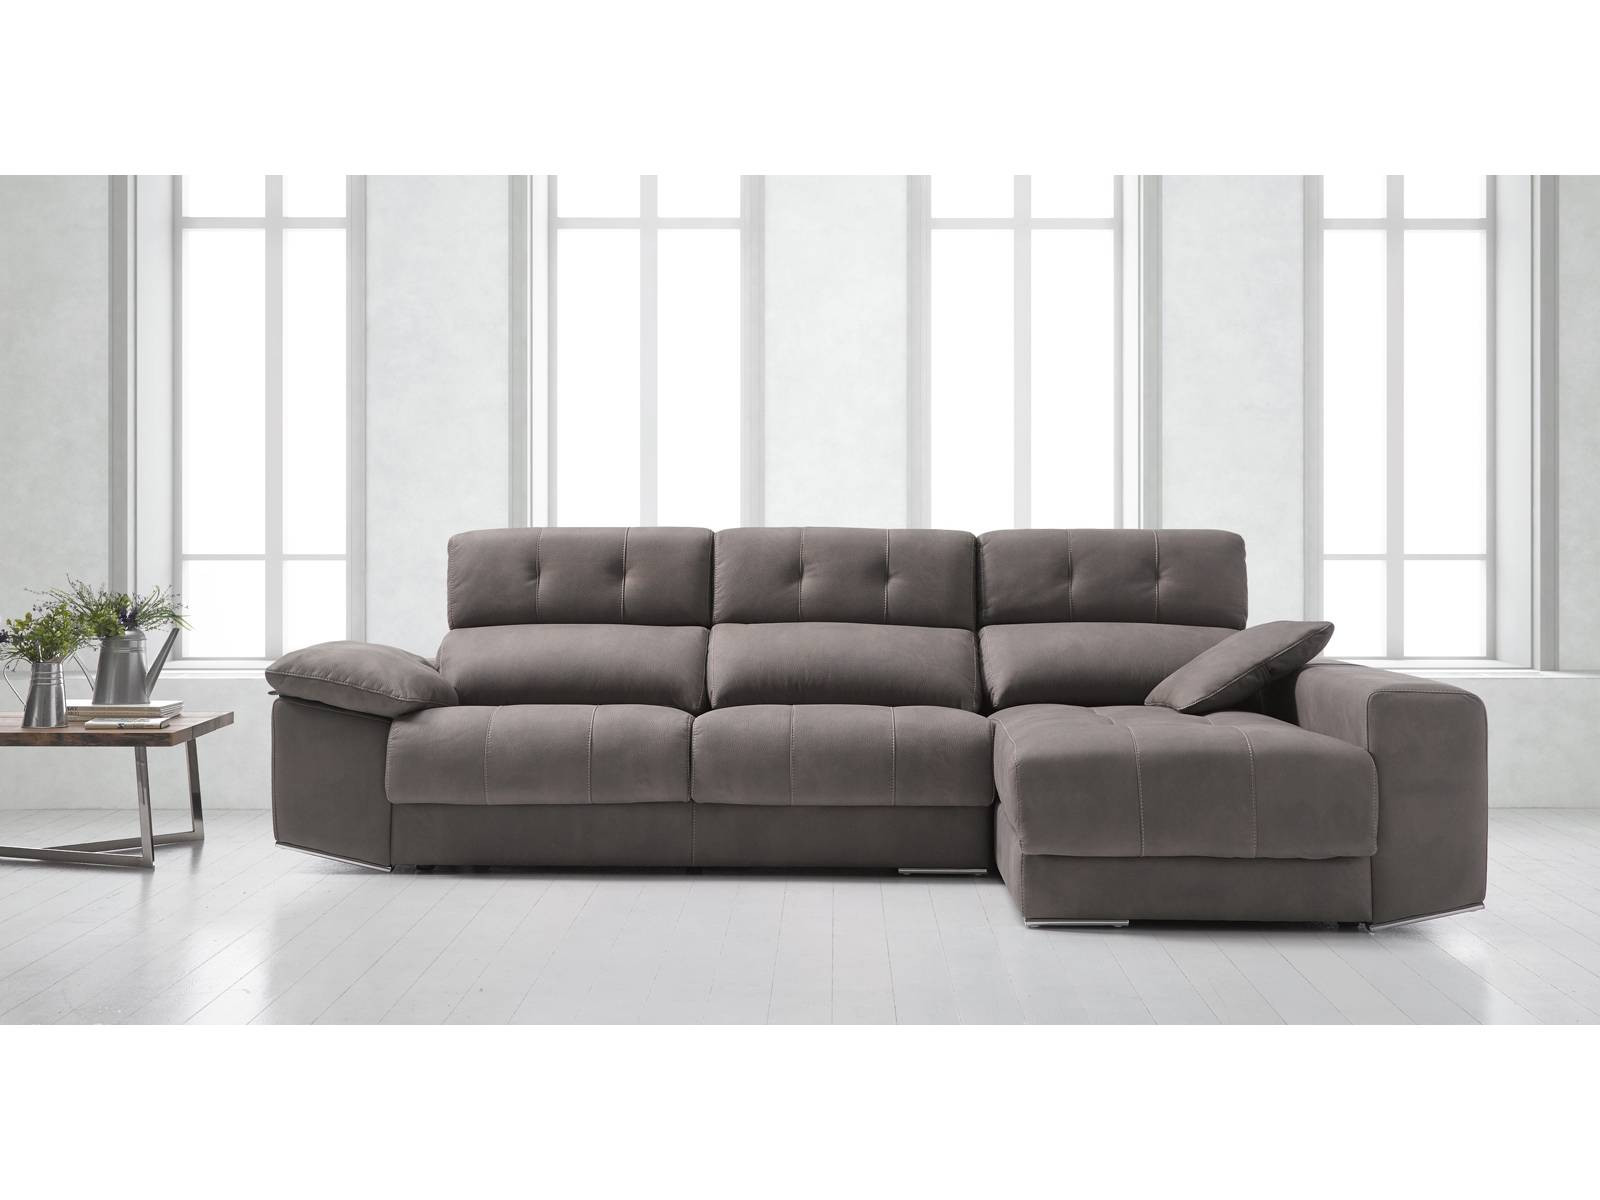 Comprar sofa Chaise Longue Adorable sofá Con Chaiselongue Mod Mónica Of Comprar sofa Chaise Longue Impresionante Prar sofá Tres Plazas Con Chaise Longue Koala Y